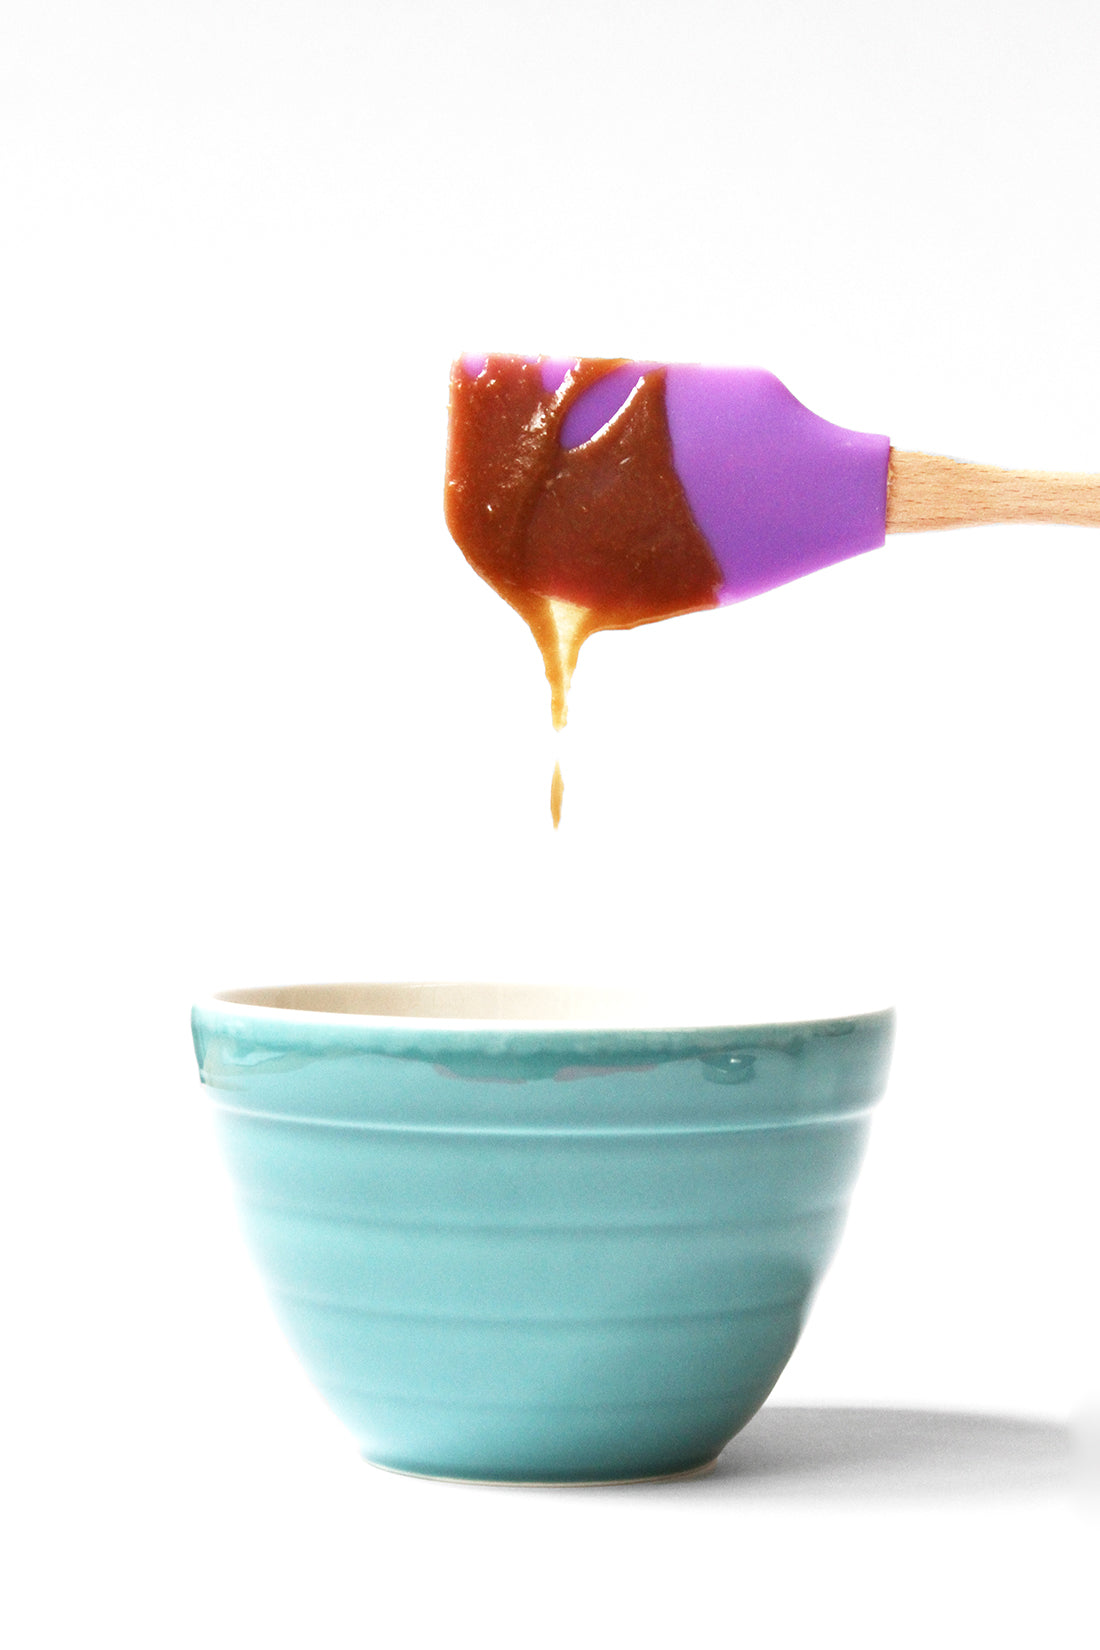 Image from the side of a purple spatula covered in toffee dripping into a blue mixing bowl for Miss Jones Baking Co Sticky Toffee Cakes